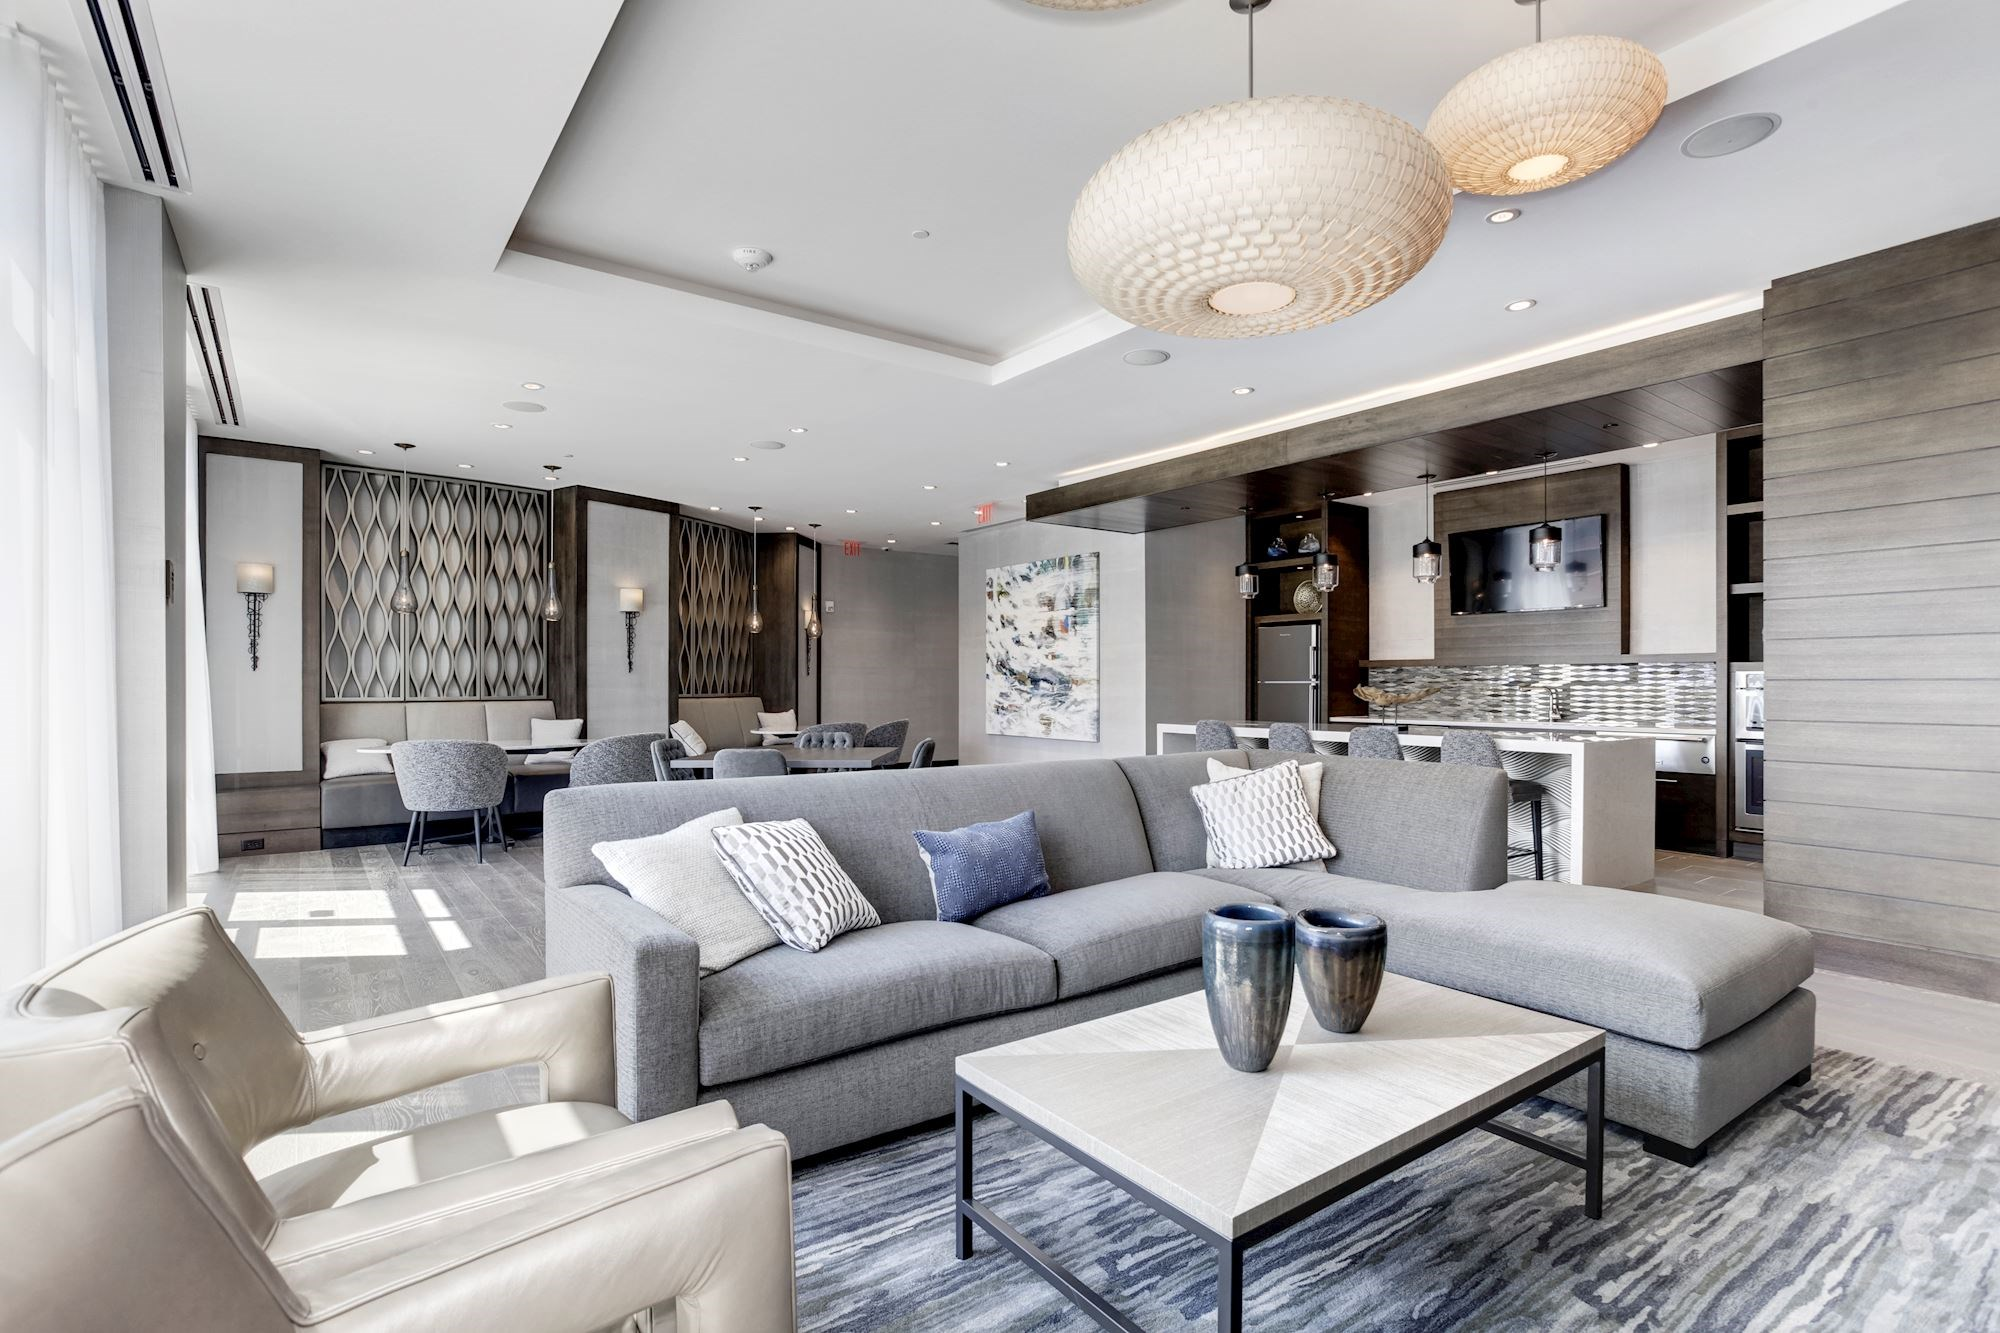 Penthouse Club Room